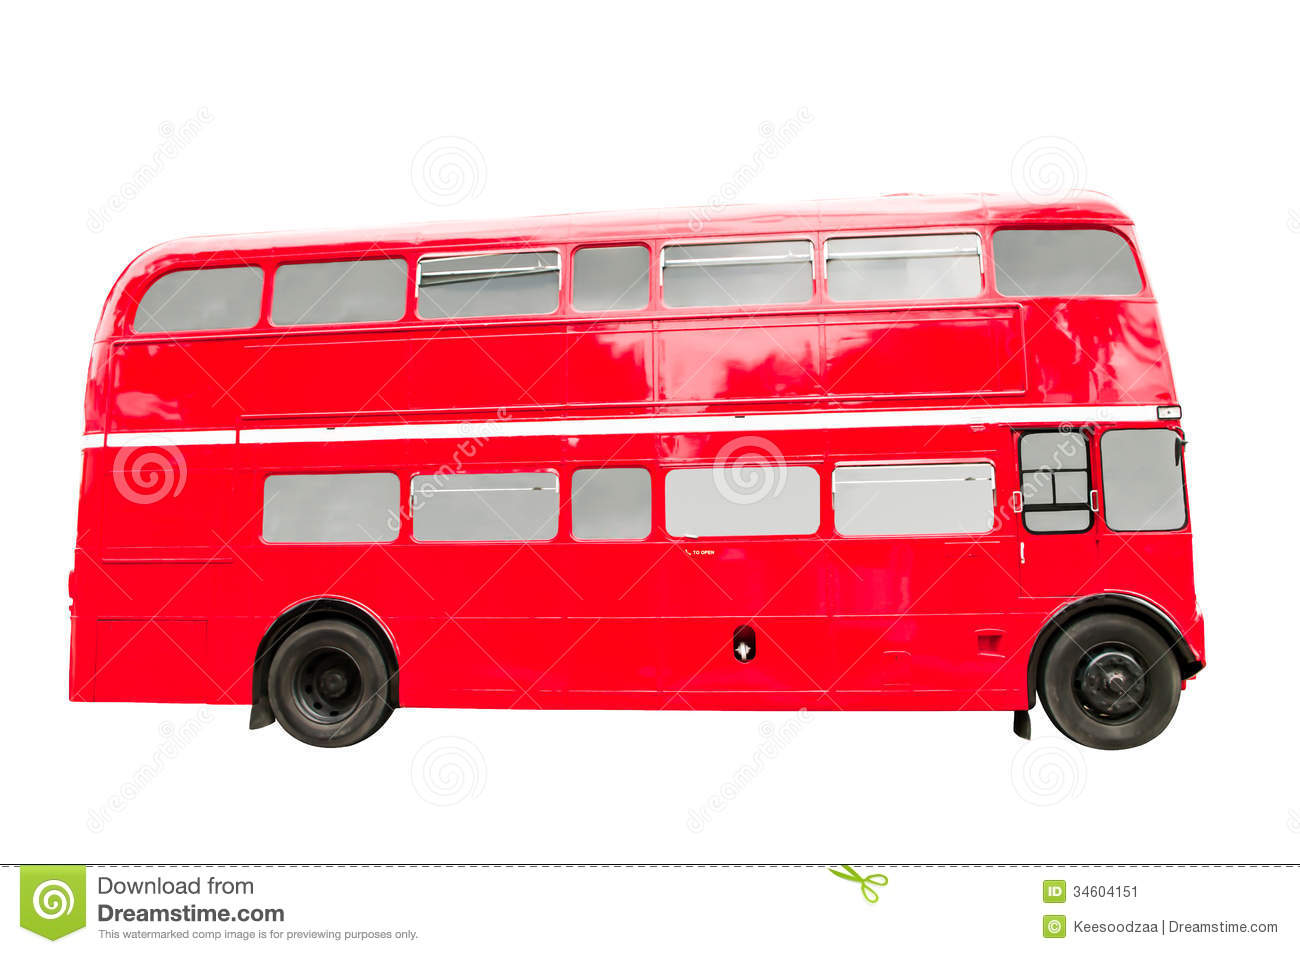 red double decker bus stock image  image of decker